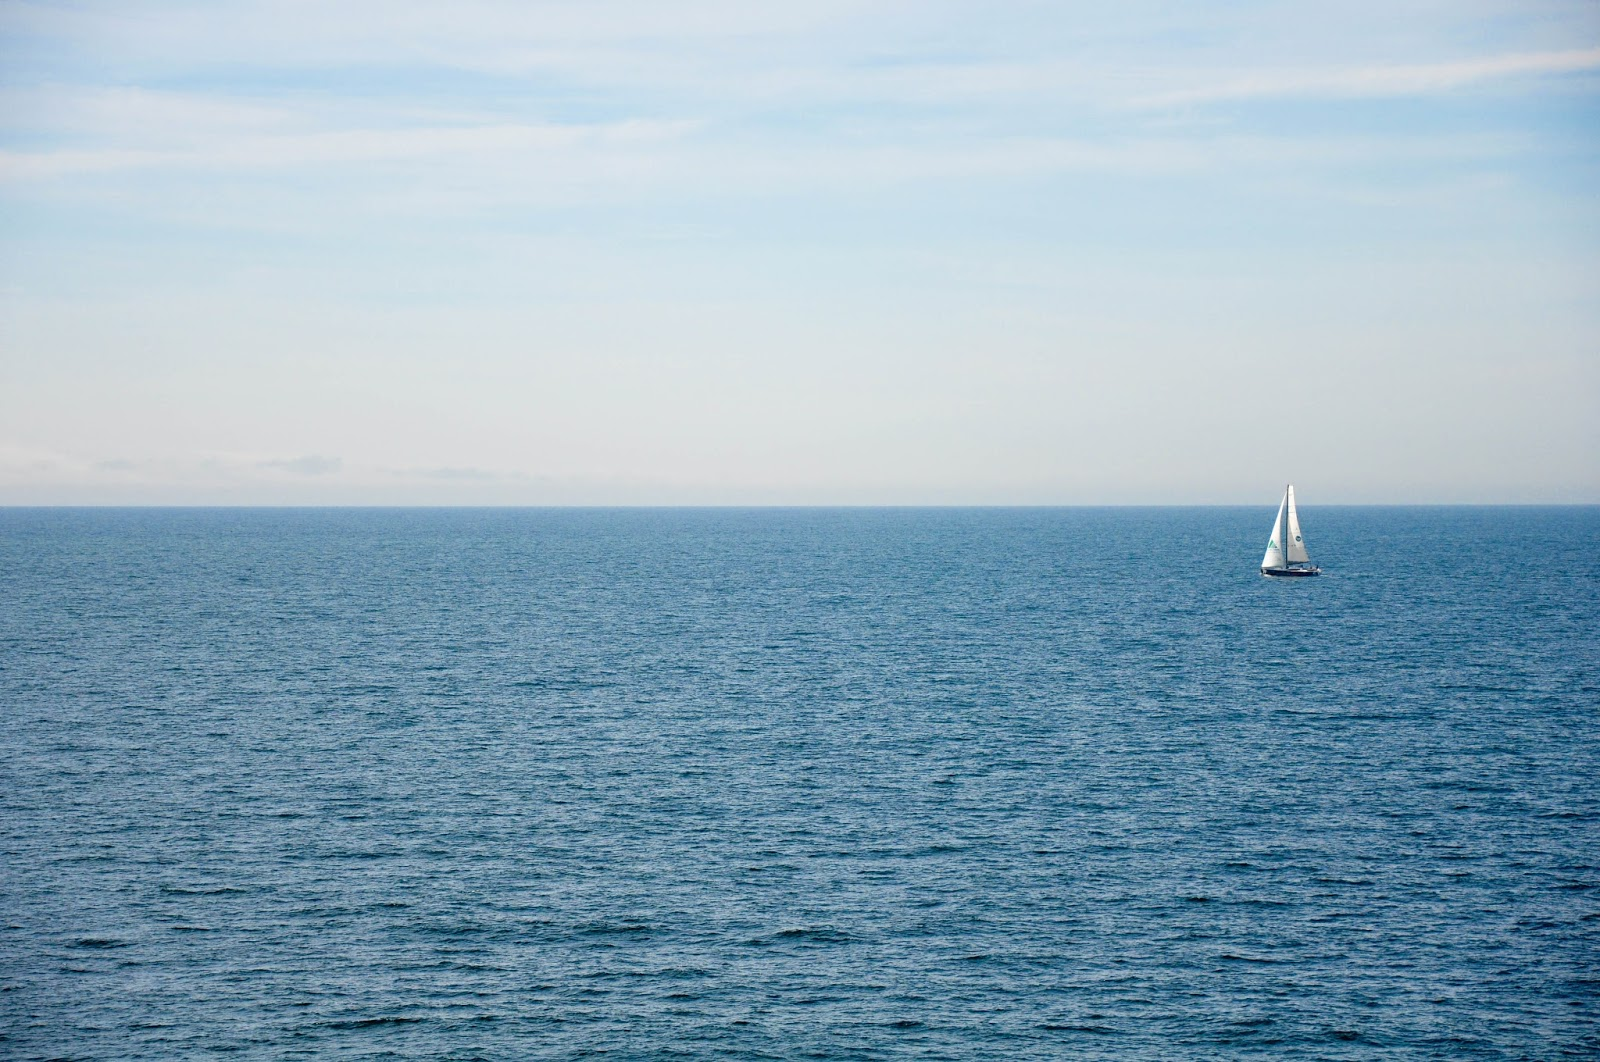 Blue sky, blue sea, The English Channel